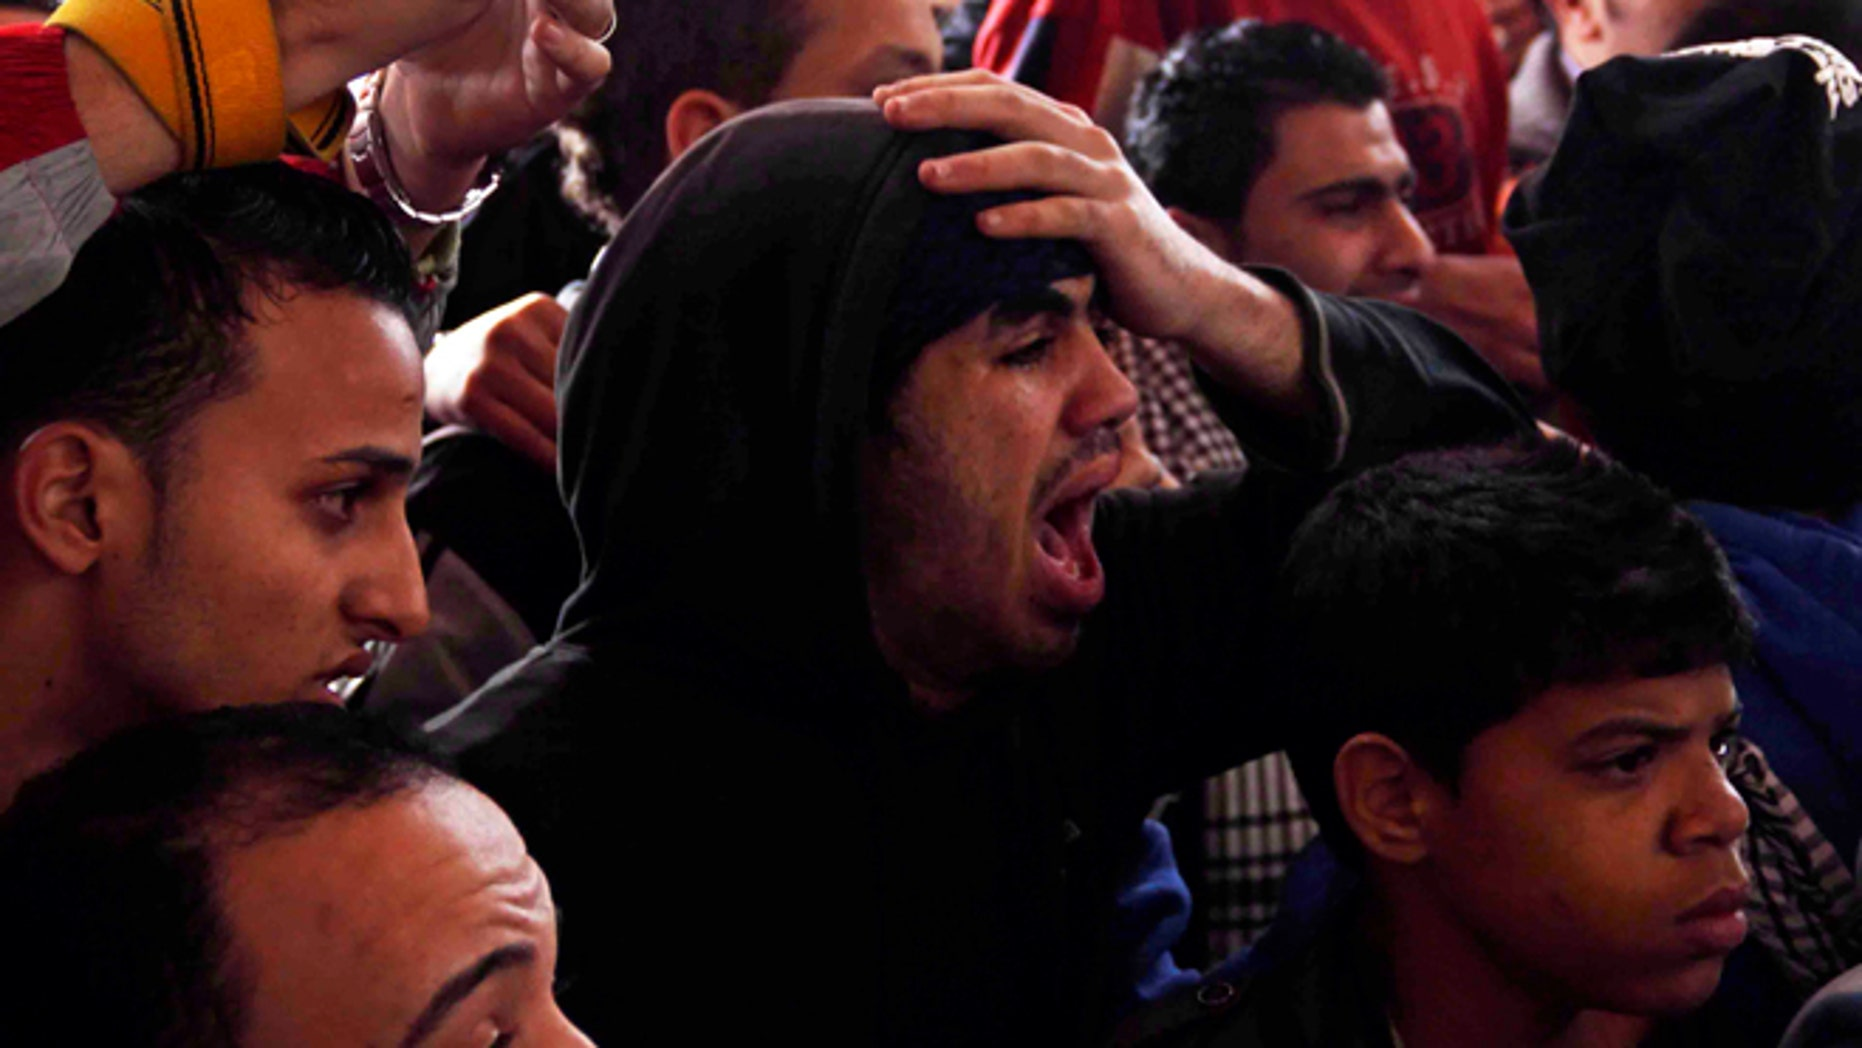 Jan. 26: Families and supporters of those accused of soccer violence from the Port Said soccer club react to the announcement of verdicts for 21 fans on trial in last years Port Said stadium incident which left 74 people dead, in Port Said, Egypt.